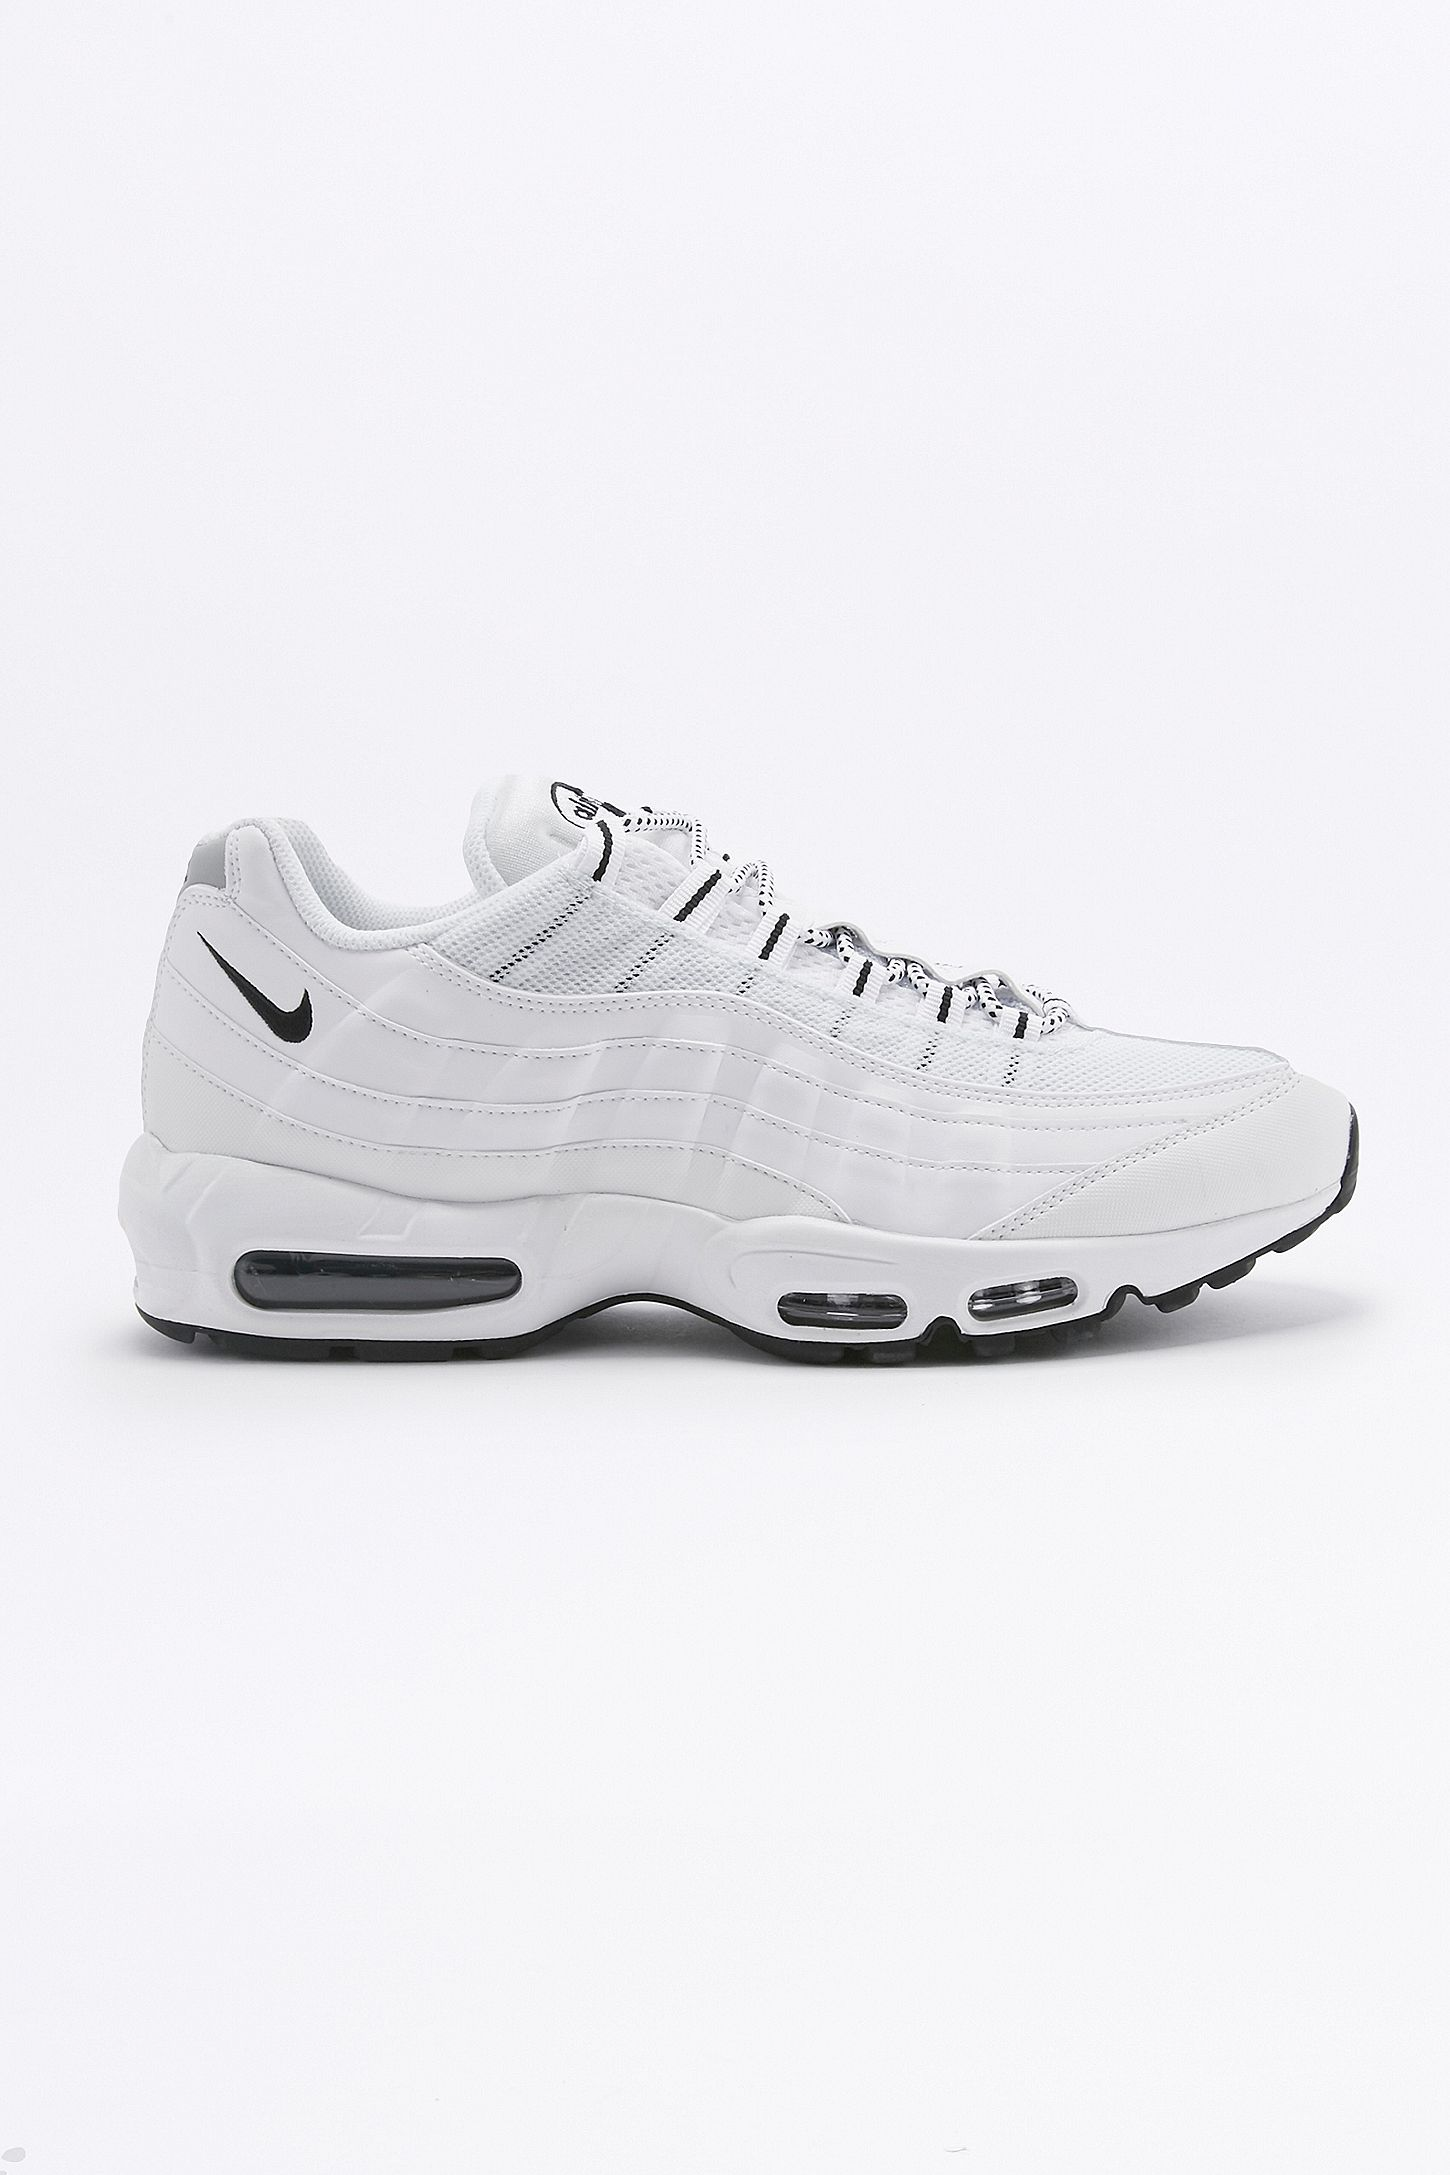 sneakers for cheap f543e 26cf7 Nike Air Max 95 Essential White and Black Trainers. Click on image to zoom.  Hover to zoom. Double Tap to Zoom